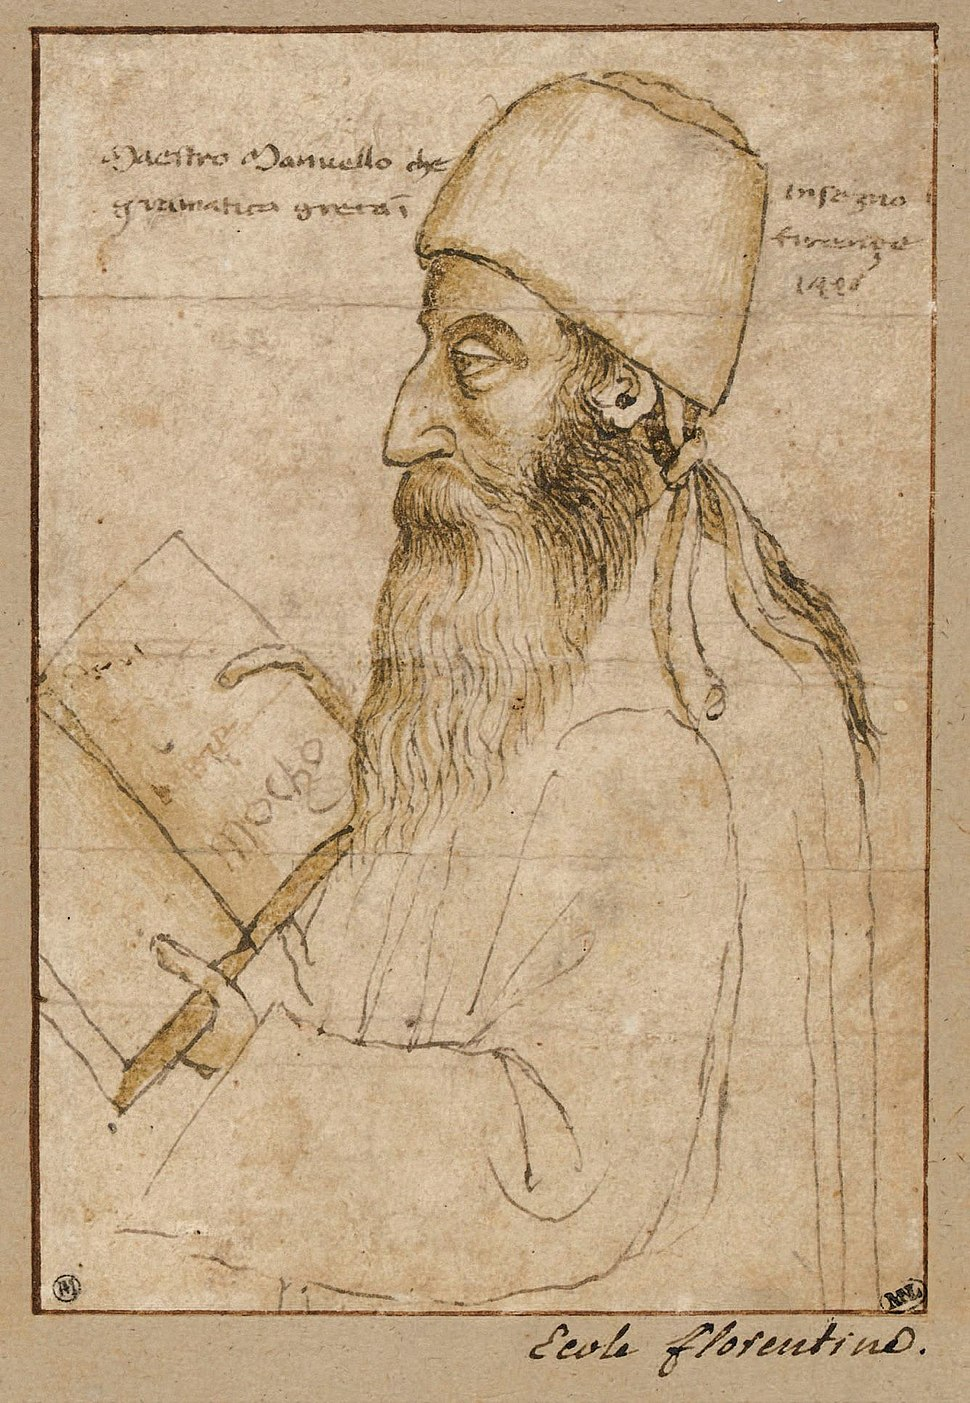 Manuel-chrysoloras-paolo-uccello-louvre-15th